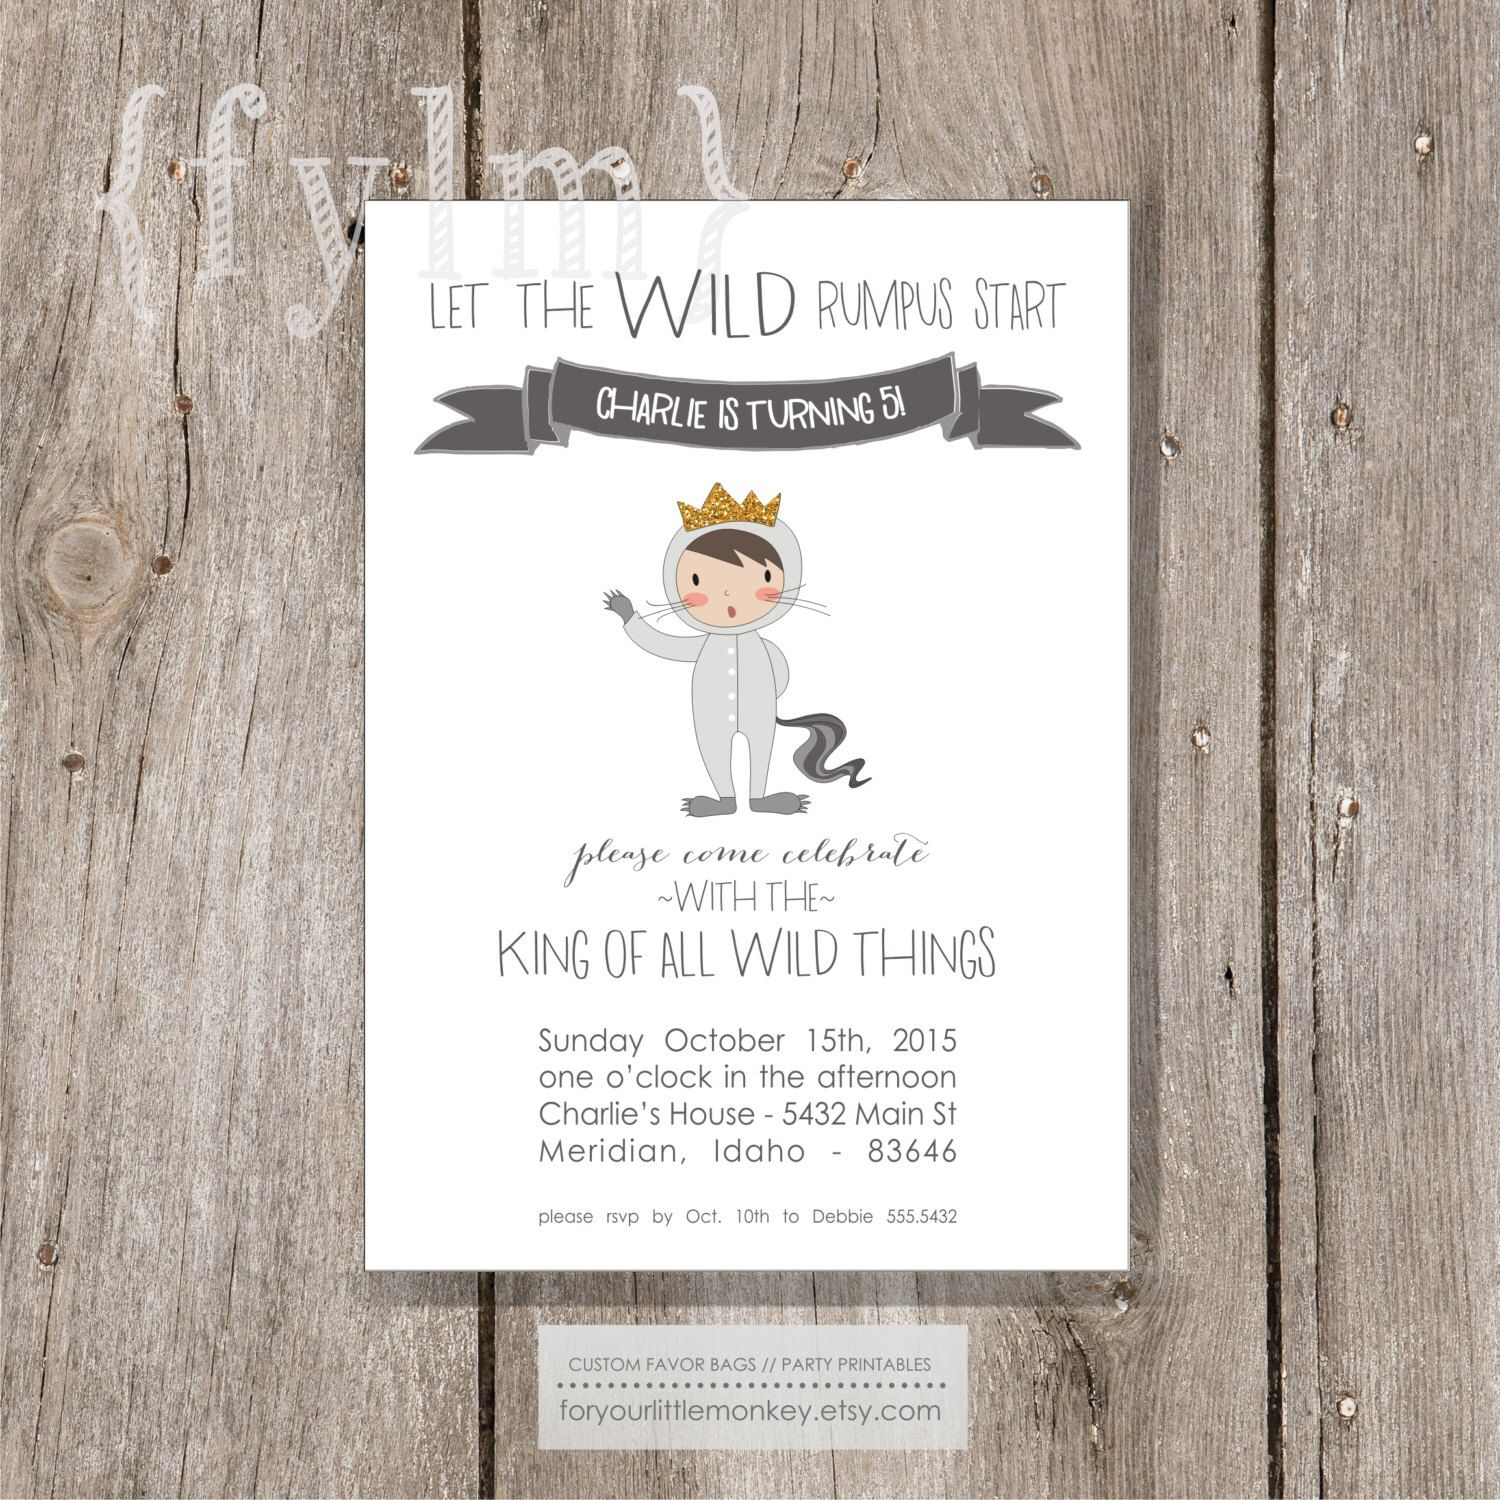 WILD THINGS Party Printable Party Invitations - I design - Wild Rumpus - YOU Print by foryourlittlemonkey on Etsy https://www.etsy.com/listing/234684177/wild-things-party-printable-party